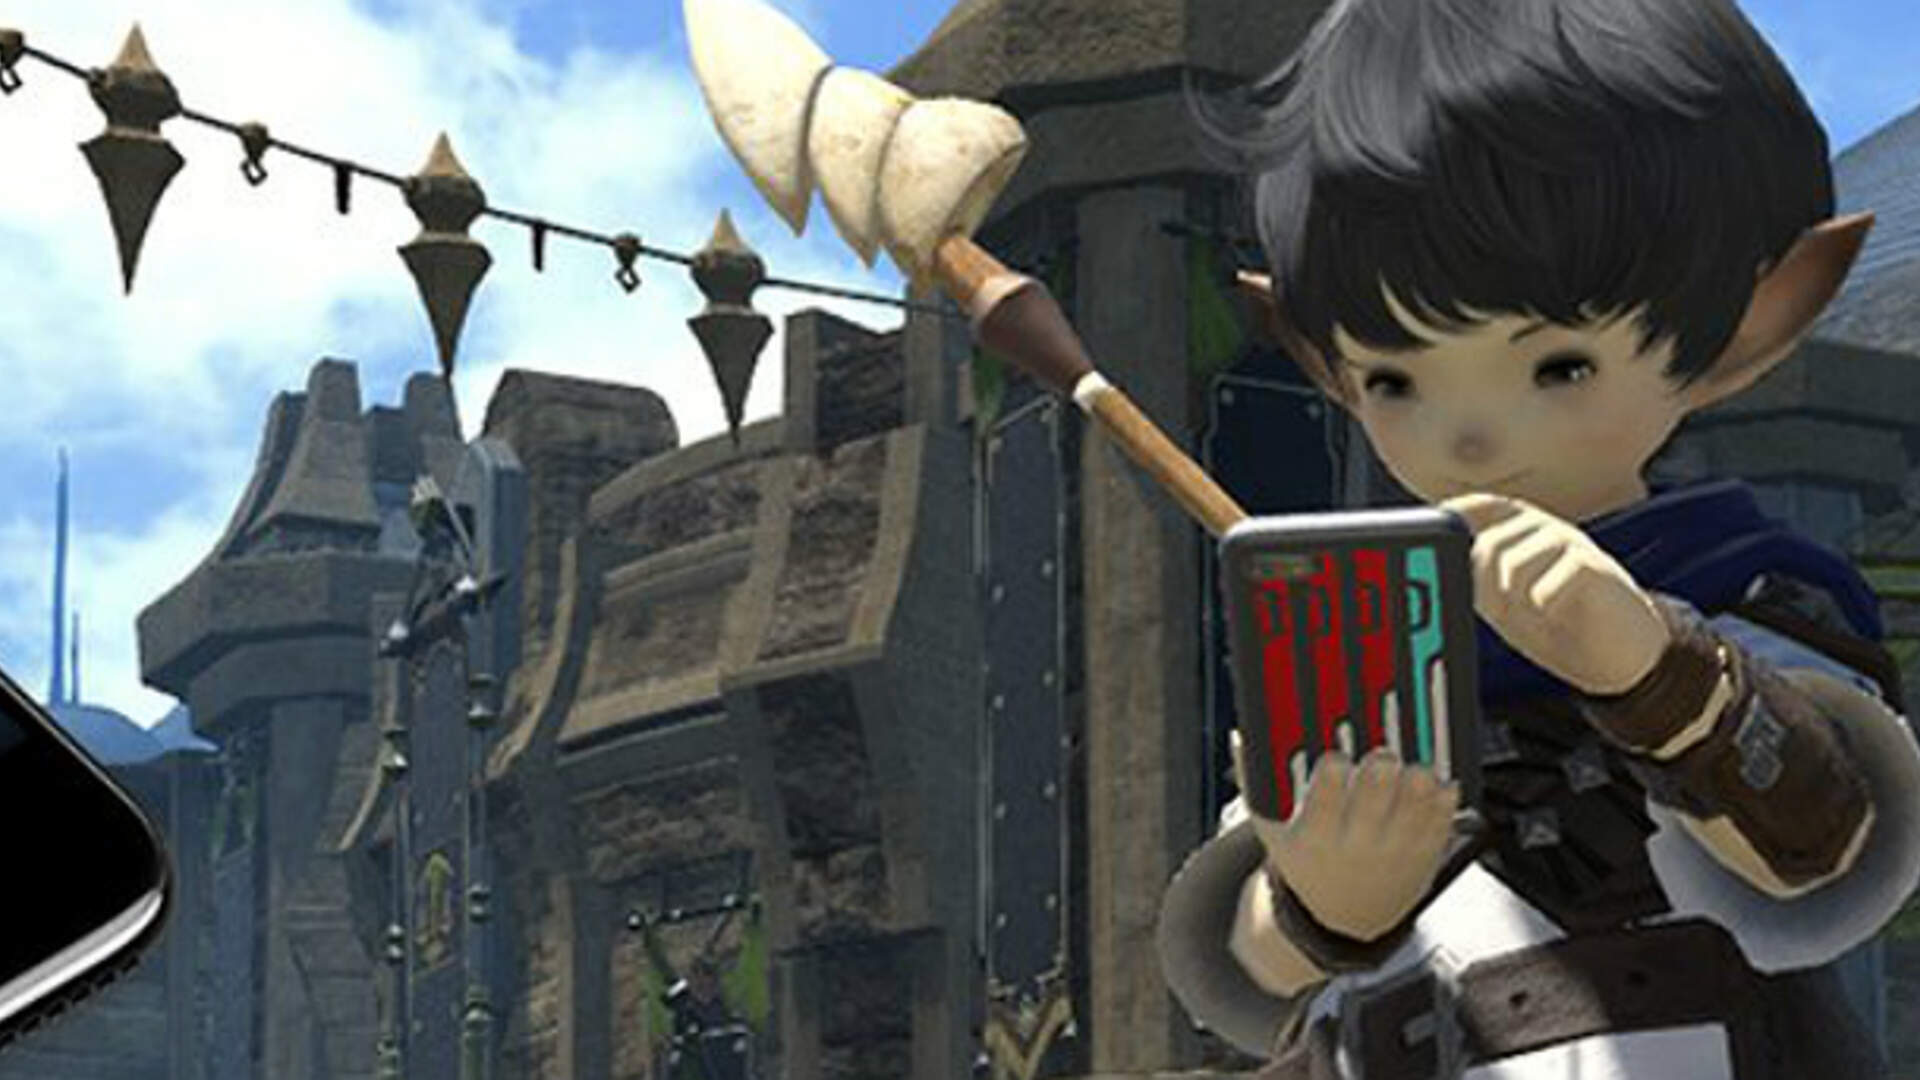 Final Fantasy 14 Introduces Companion App For Upcoming Patch 4.3